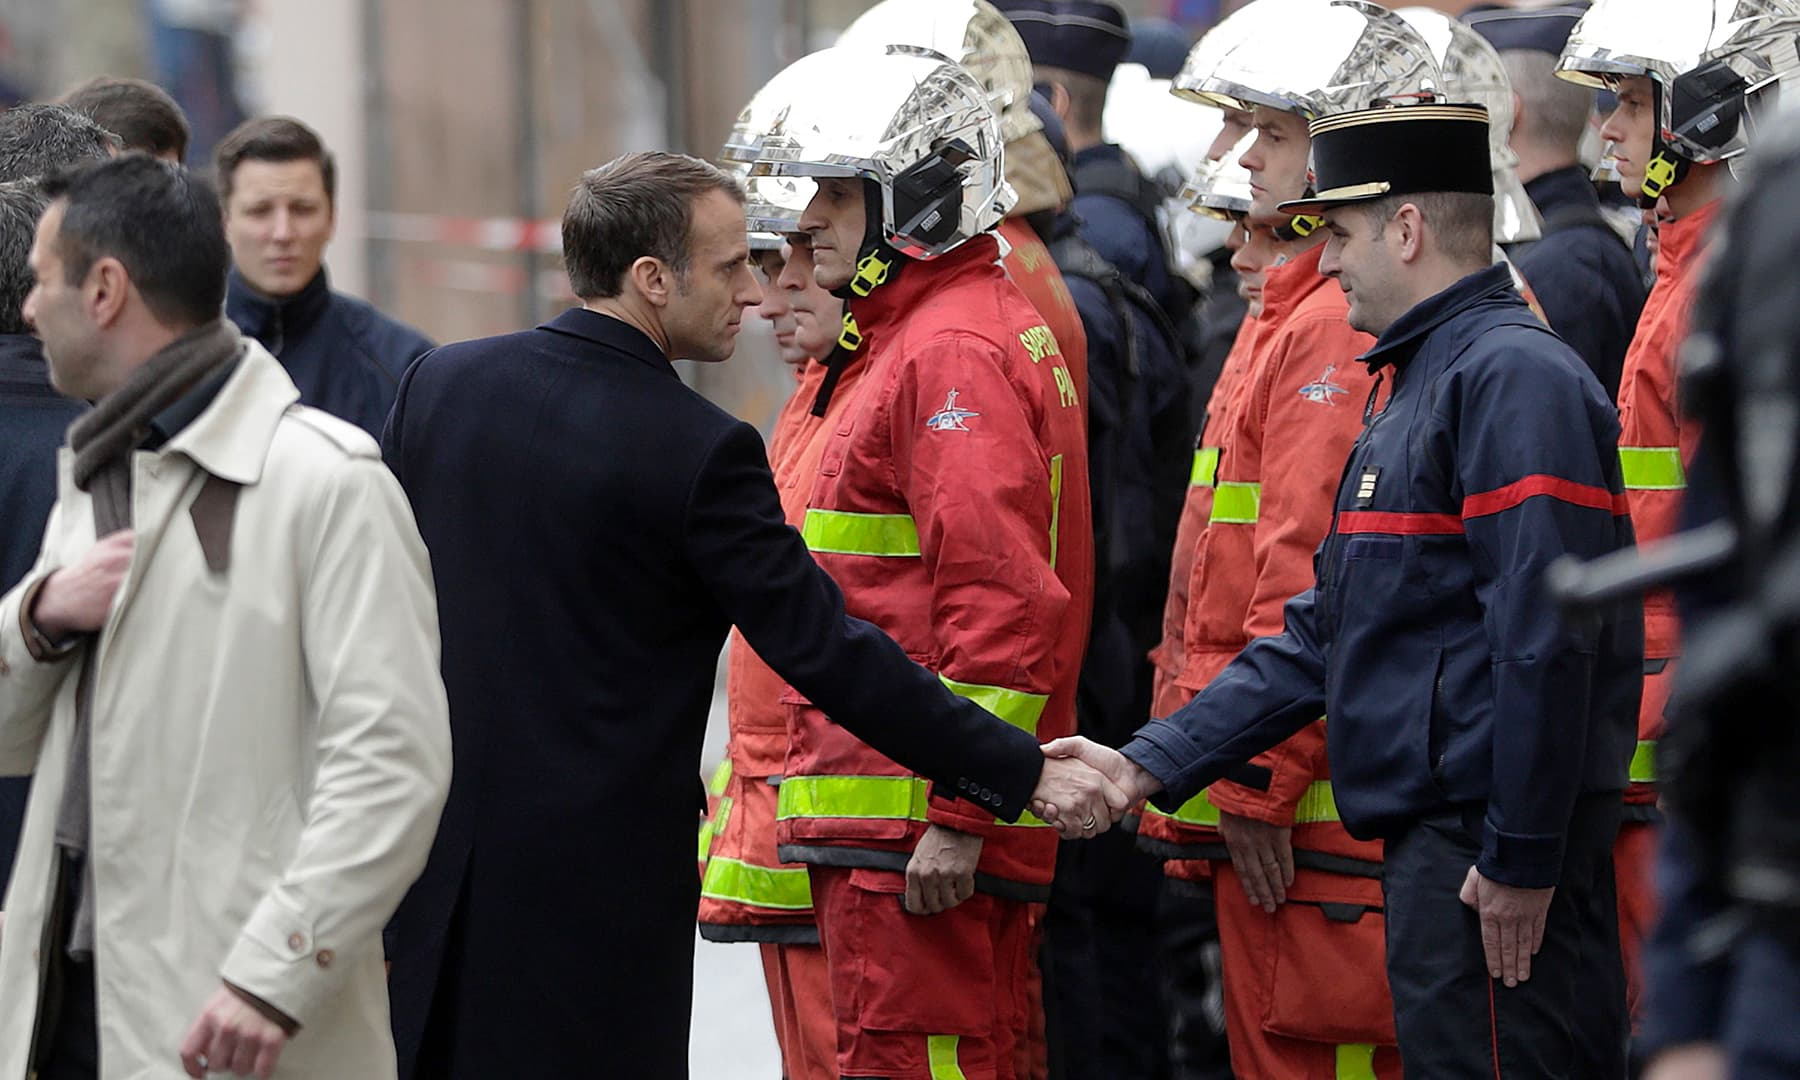 French President Emmanuel Macron shakes hands with a firefighter during a visit in the streets of Paris. —AFP